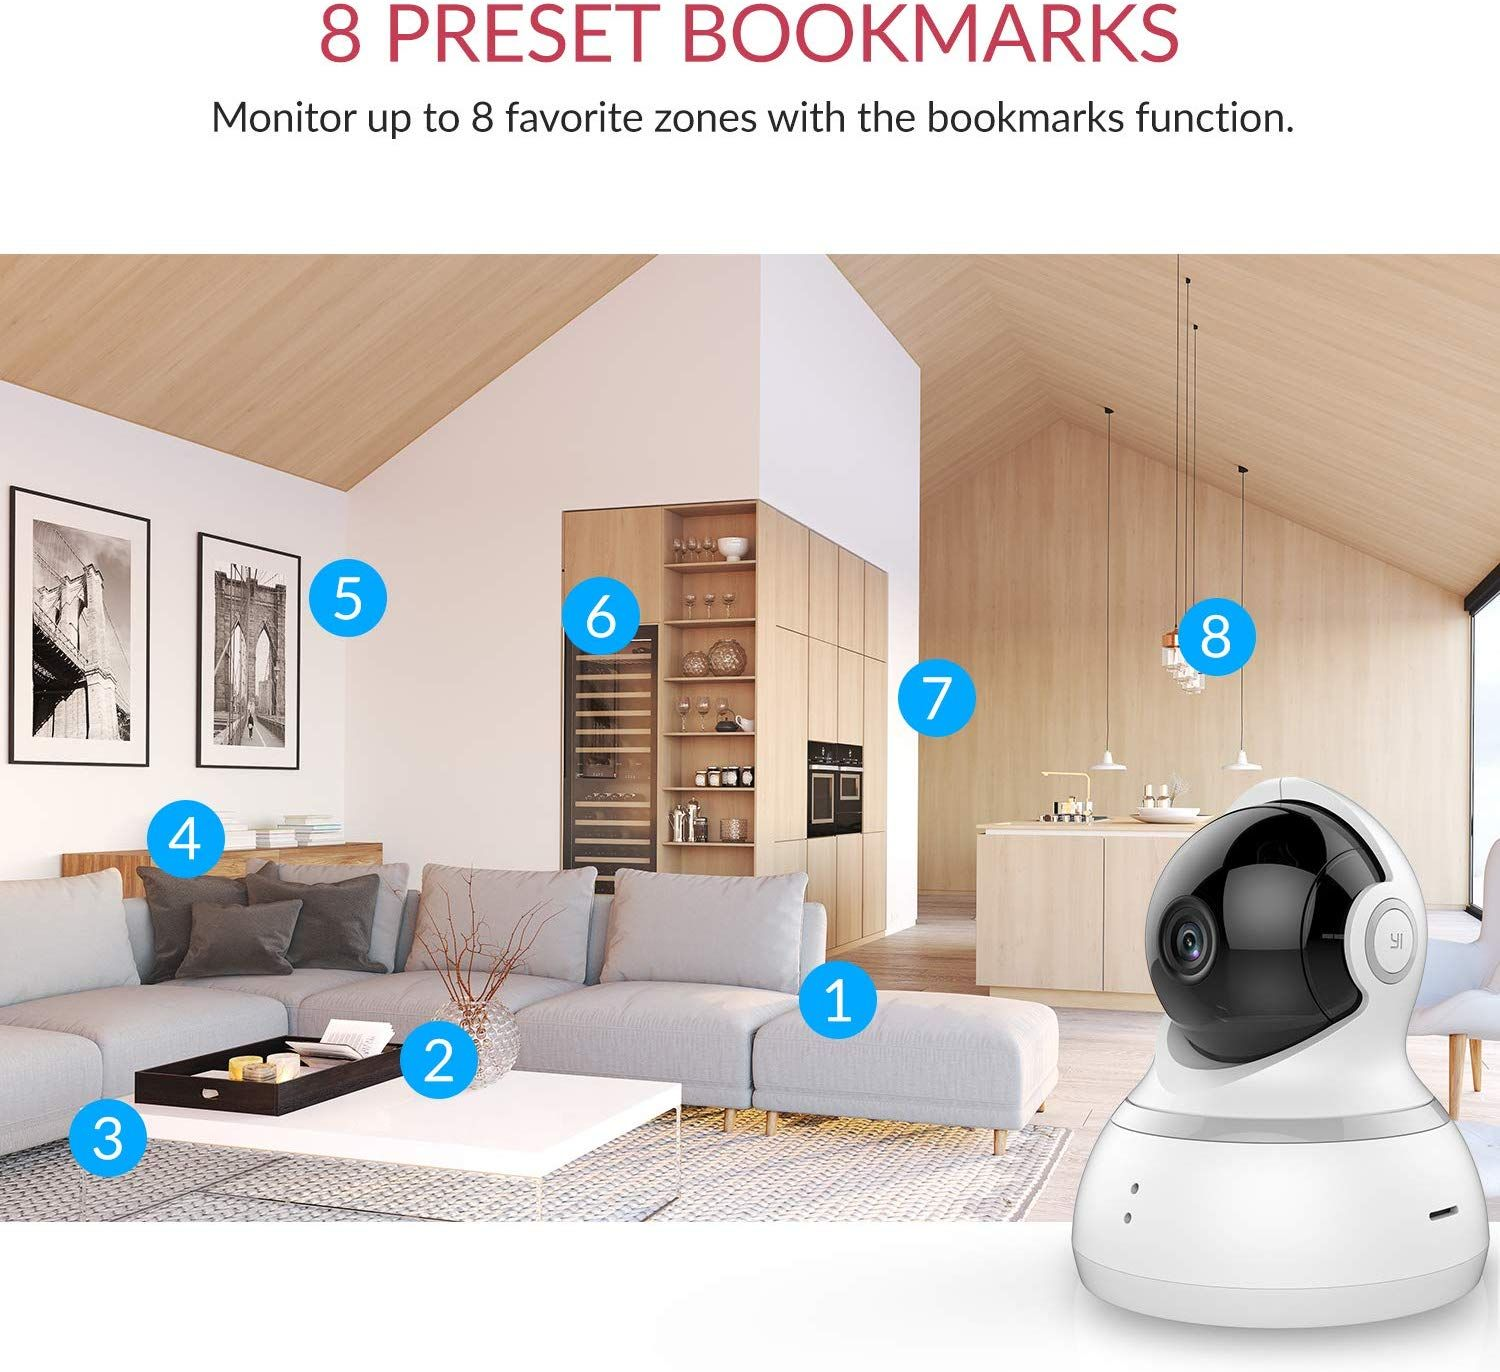 YI Dome Camera 1080p HD Pan//Tilt//Zoom Wireless IP Security Surveillance System